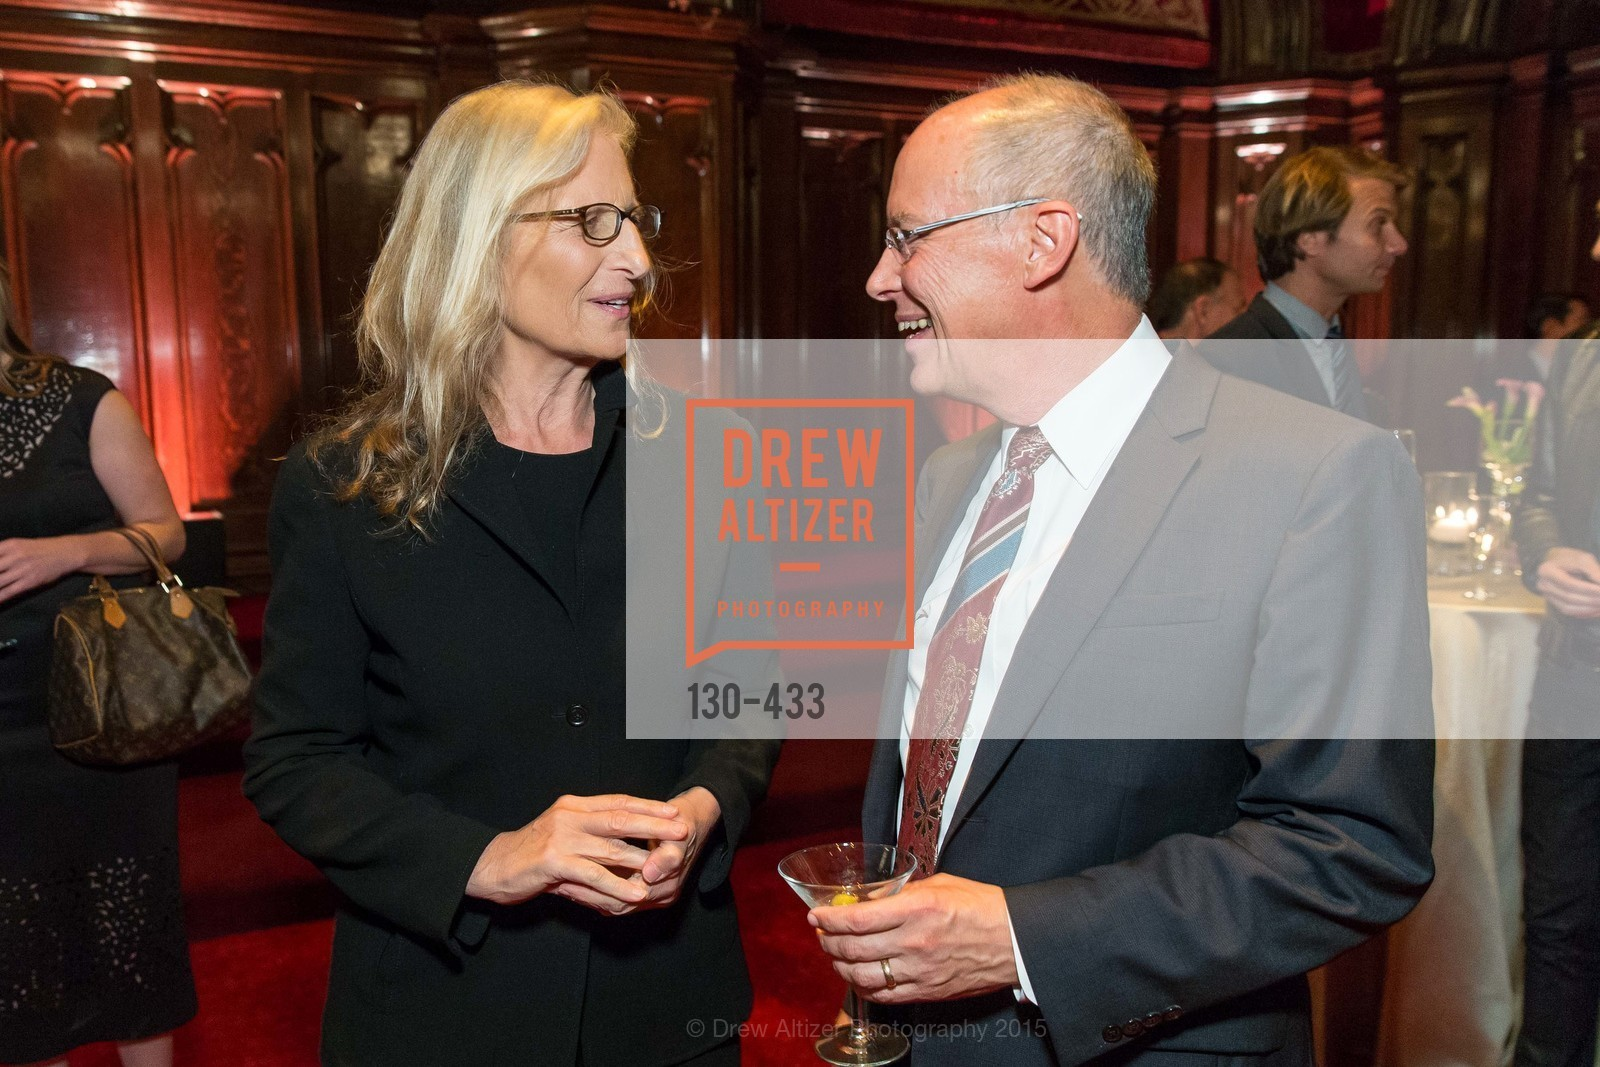 Annie Leibovitz, Charles Desmarais, SFMOMA Contemporary Vision Award, Regency Ballroom. 1300 Van Ness, November 3rd, 2015,Drew Altizer, Drew Altizer Photography, full-service event agency, private events, San Francisco photographer, photographer California